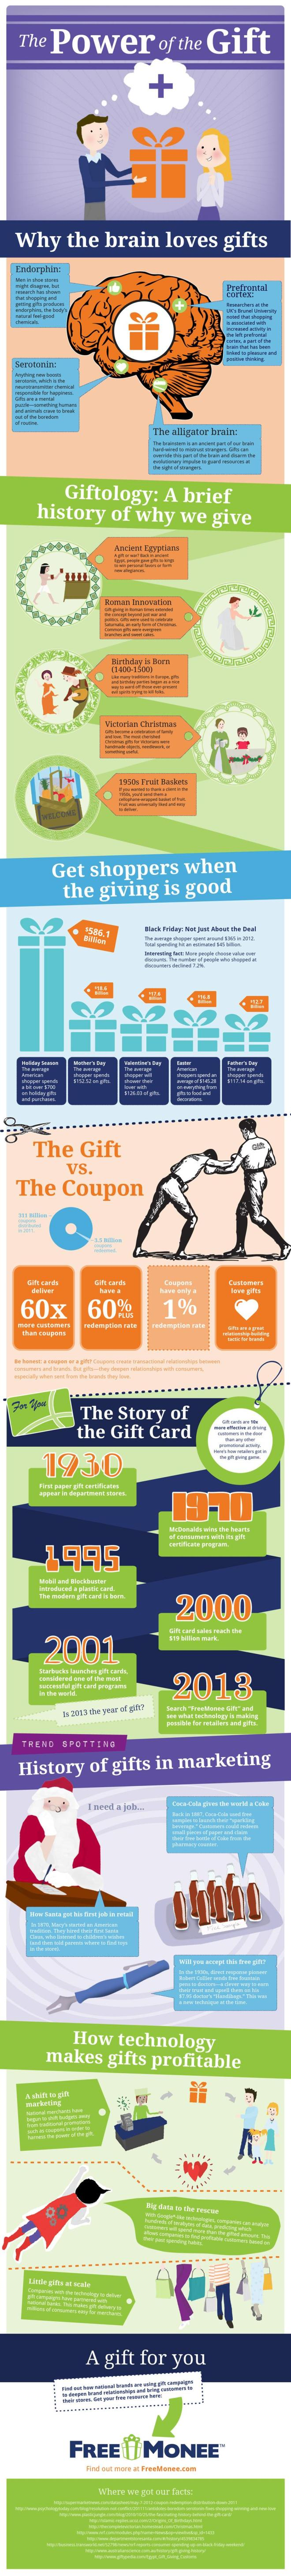 The Power of a Gift Infographic